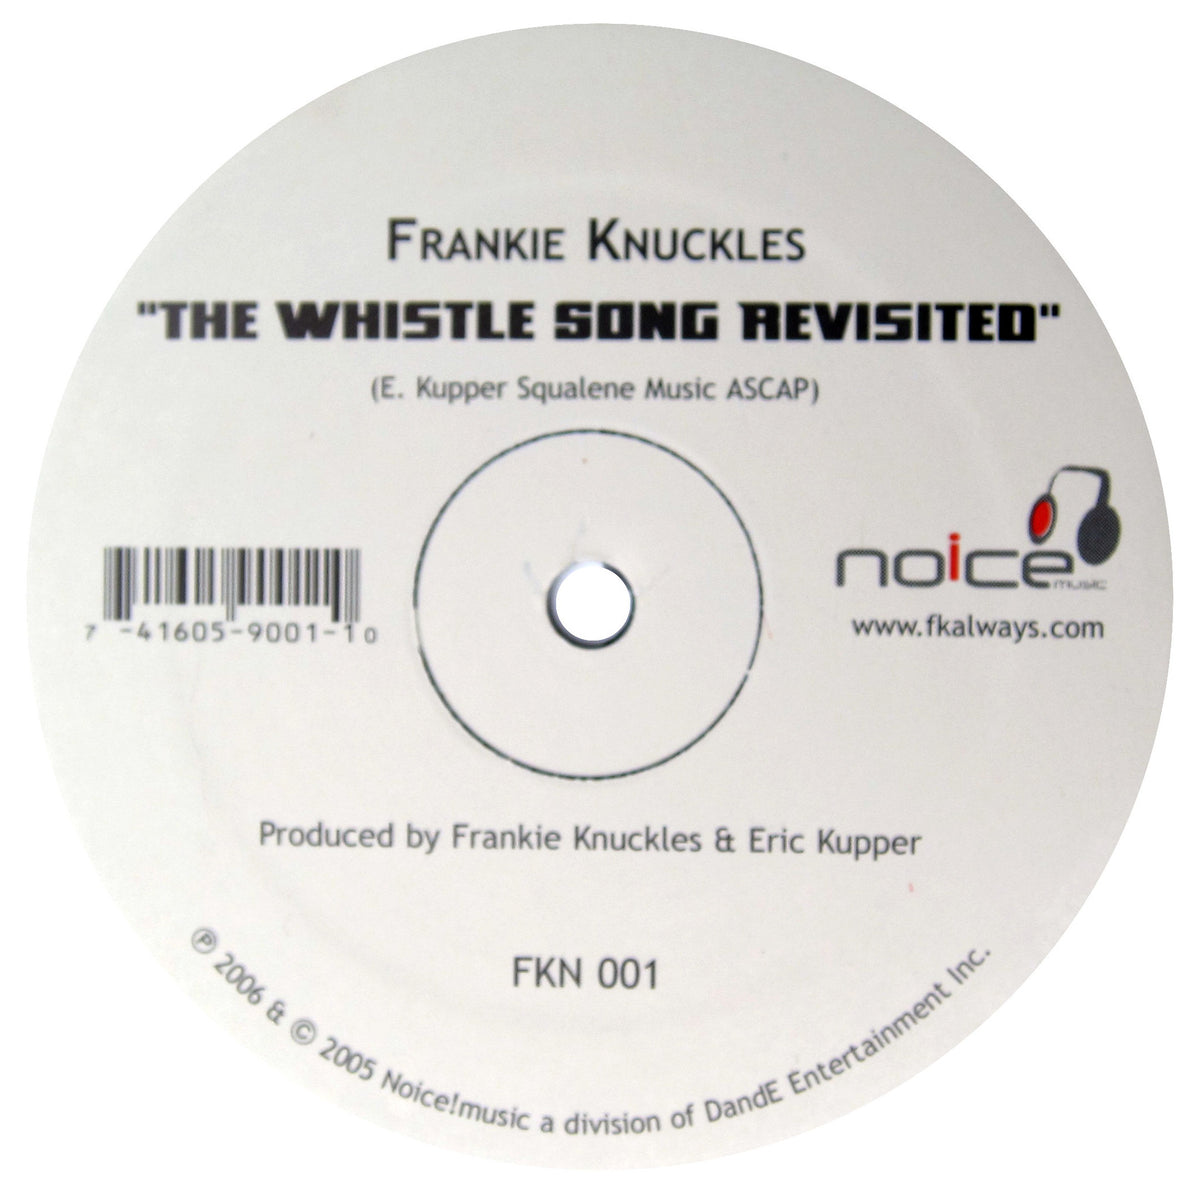 Frankie Knuckles / Eric Kupper: The Whistle Song Revisited / Gimme-Gimme Vinyl 12""